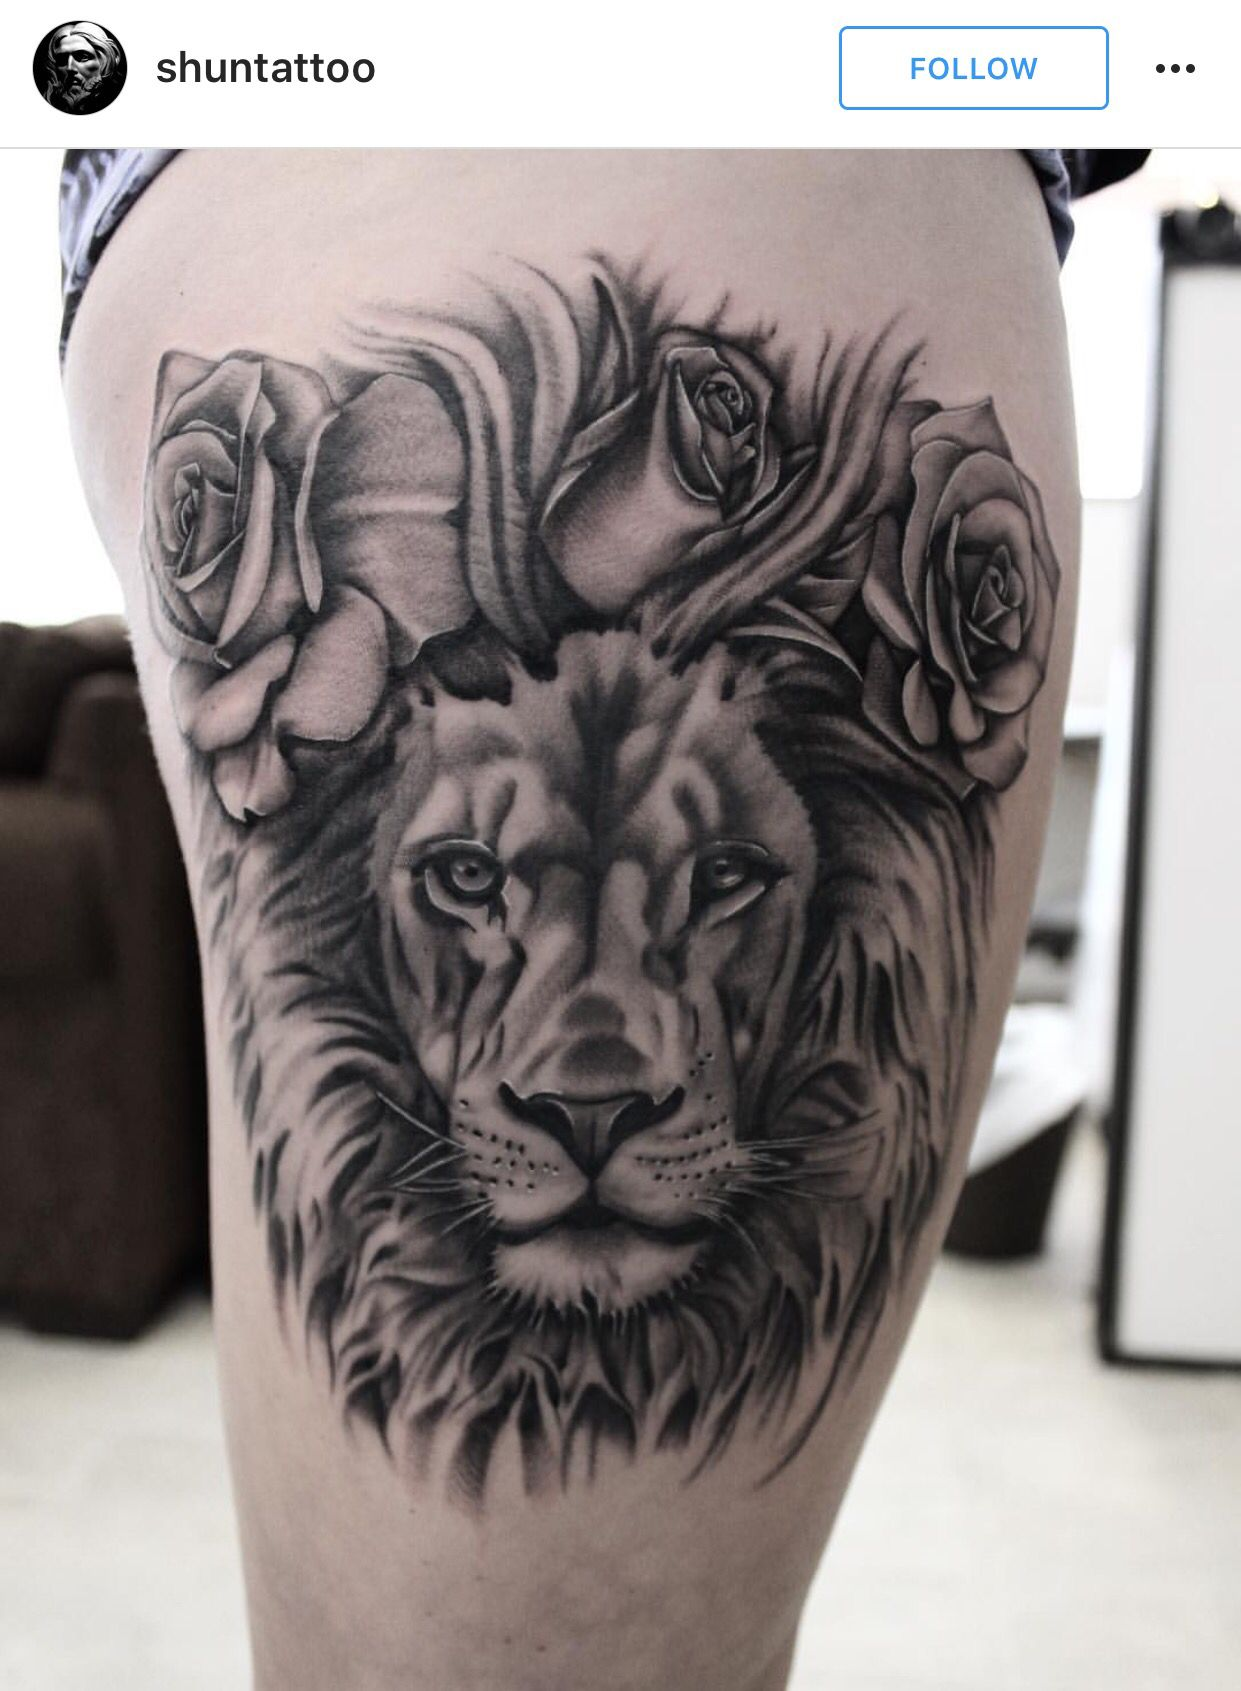 Black And Grey Realistic Lion Tattoo With Roses Realistic Tattoo Sleeve Tattoos Lion And Rose Tattoo